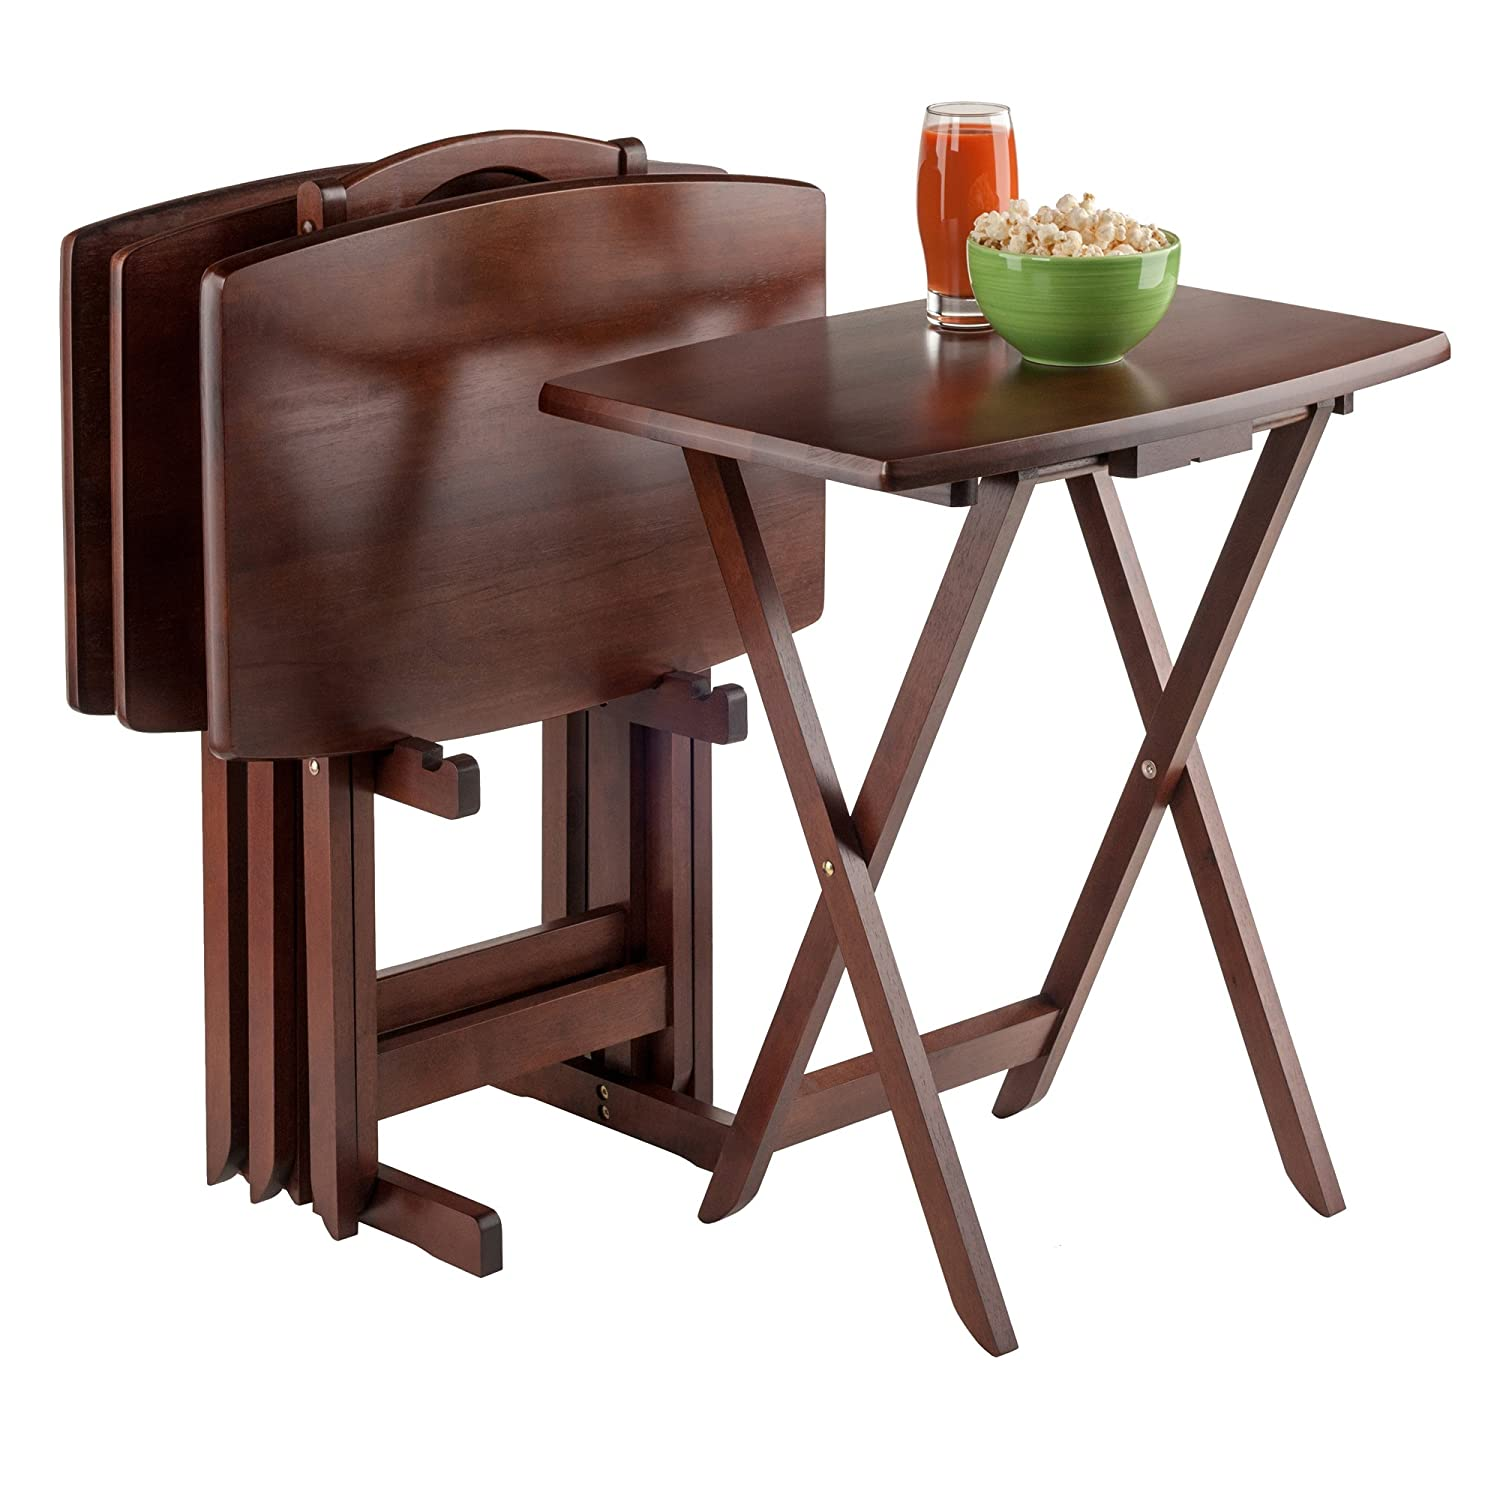 sc 1 st  Amazon.com & Amazon.com: Winsome Oversize Snack Table Set Walnut: Kitchen u0026 Dining